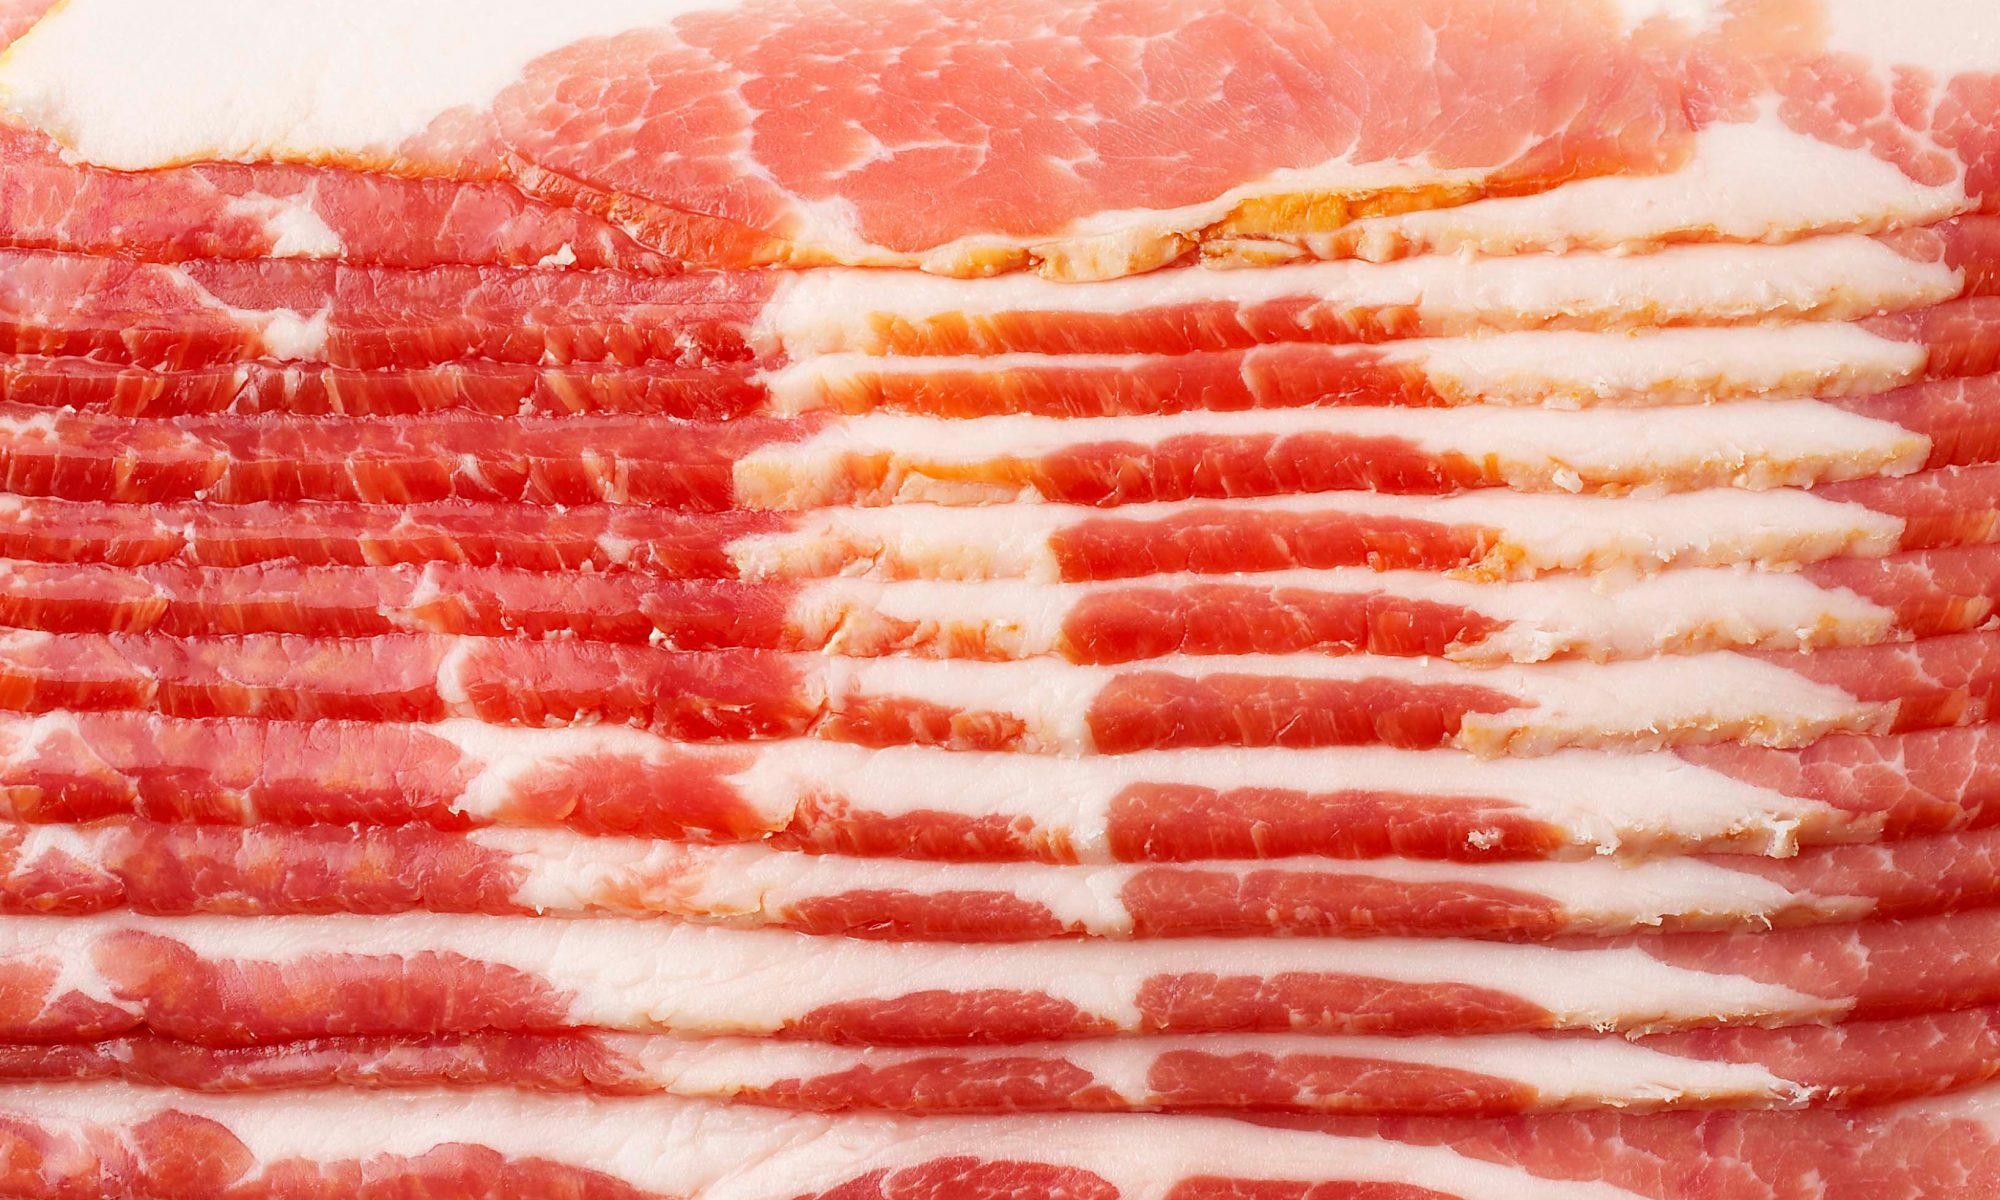 EC: Everything You Need to Read About Bacon